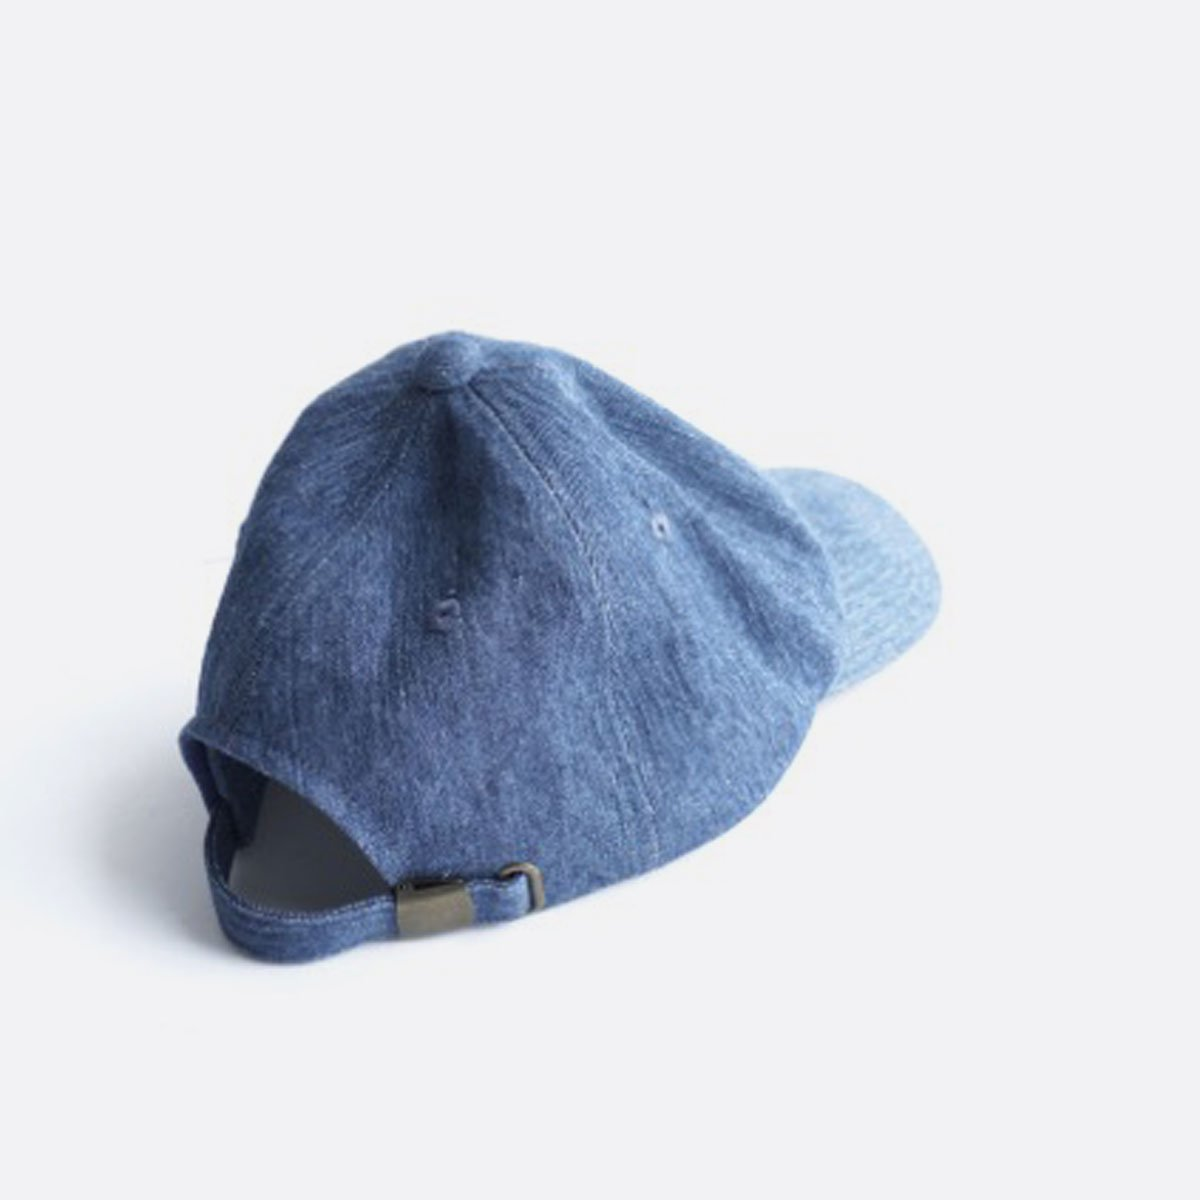 niuhans  Irish Linen Cotton Denim Baseball Cap (Light Indigo)2